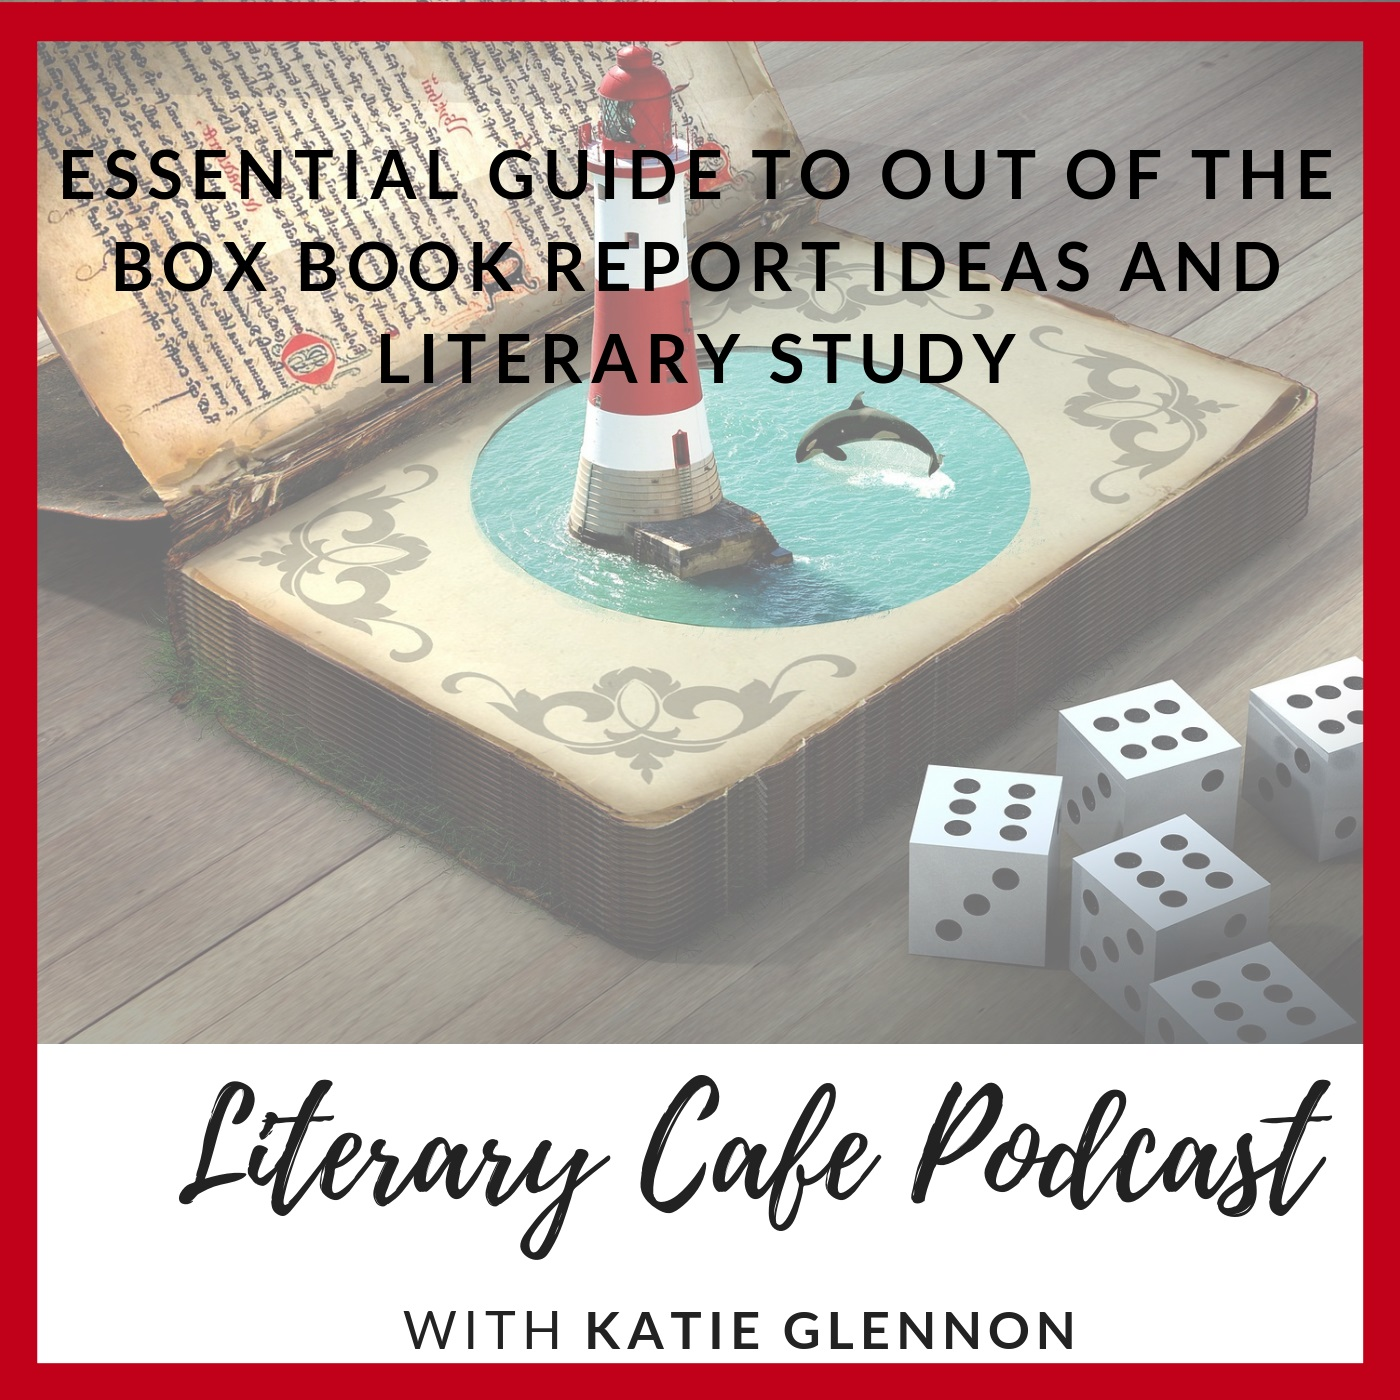 Book Report and Literary Study Ideas #homeschooling #homeschool #languagearts #reading #bookreports #literaturestudy #literarystudy #elementary #middleschool #highschool #literarycafepodcast